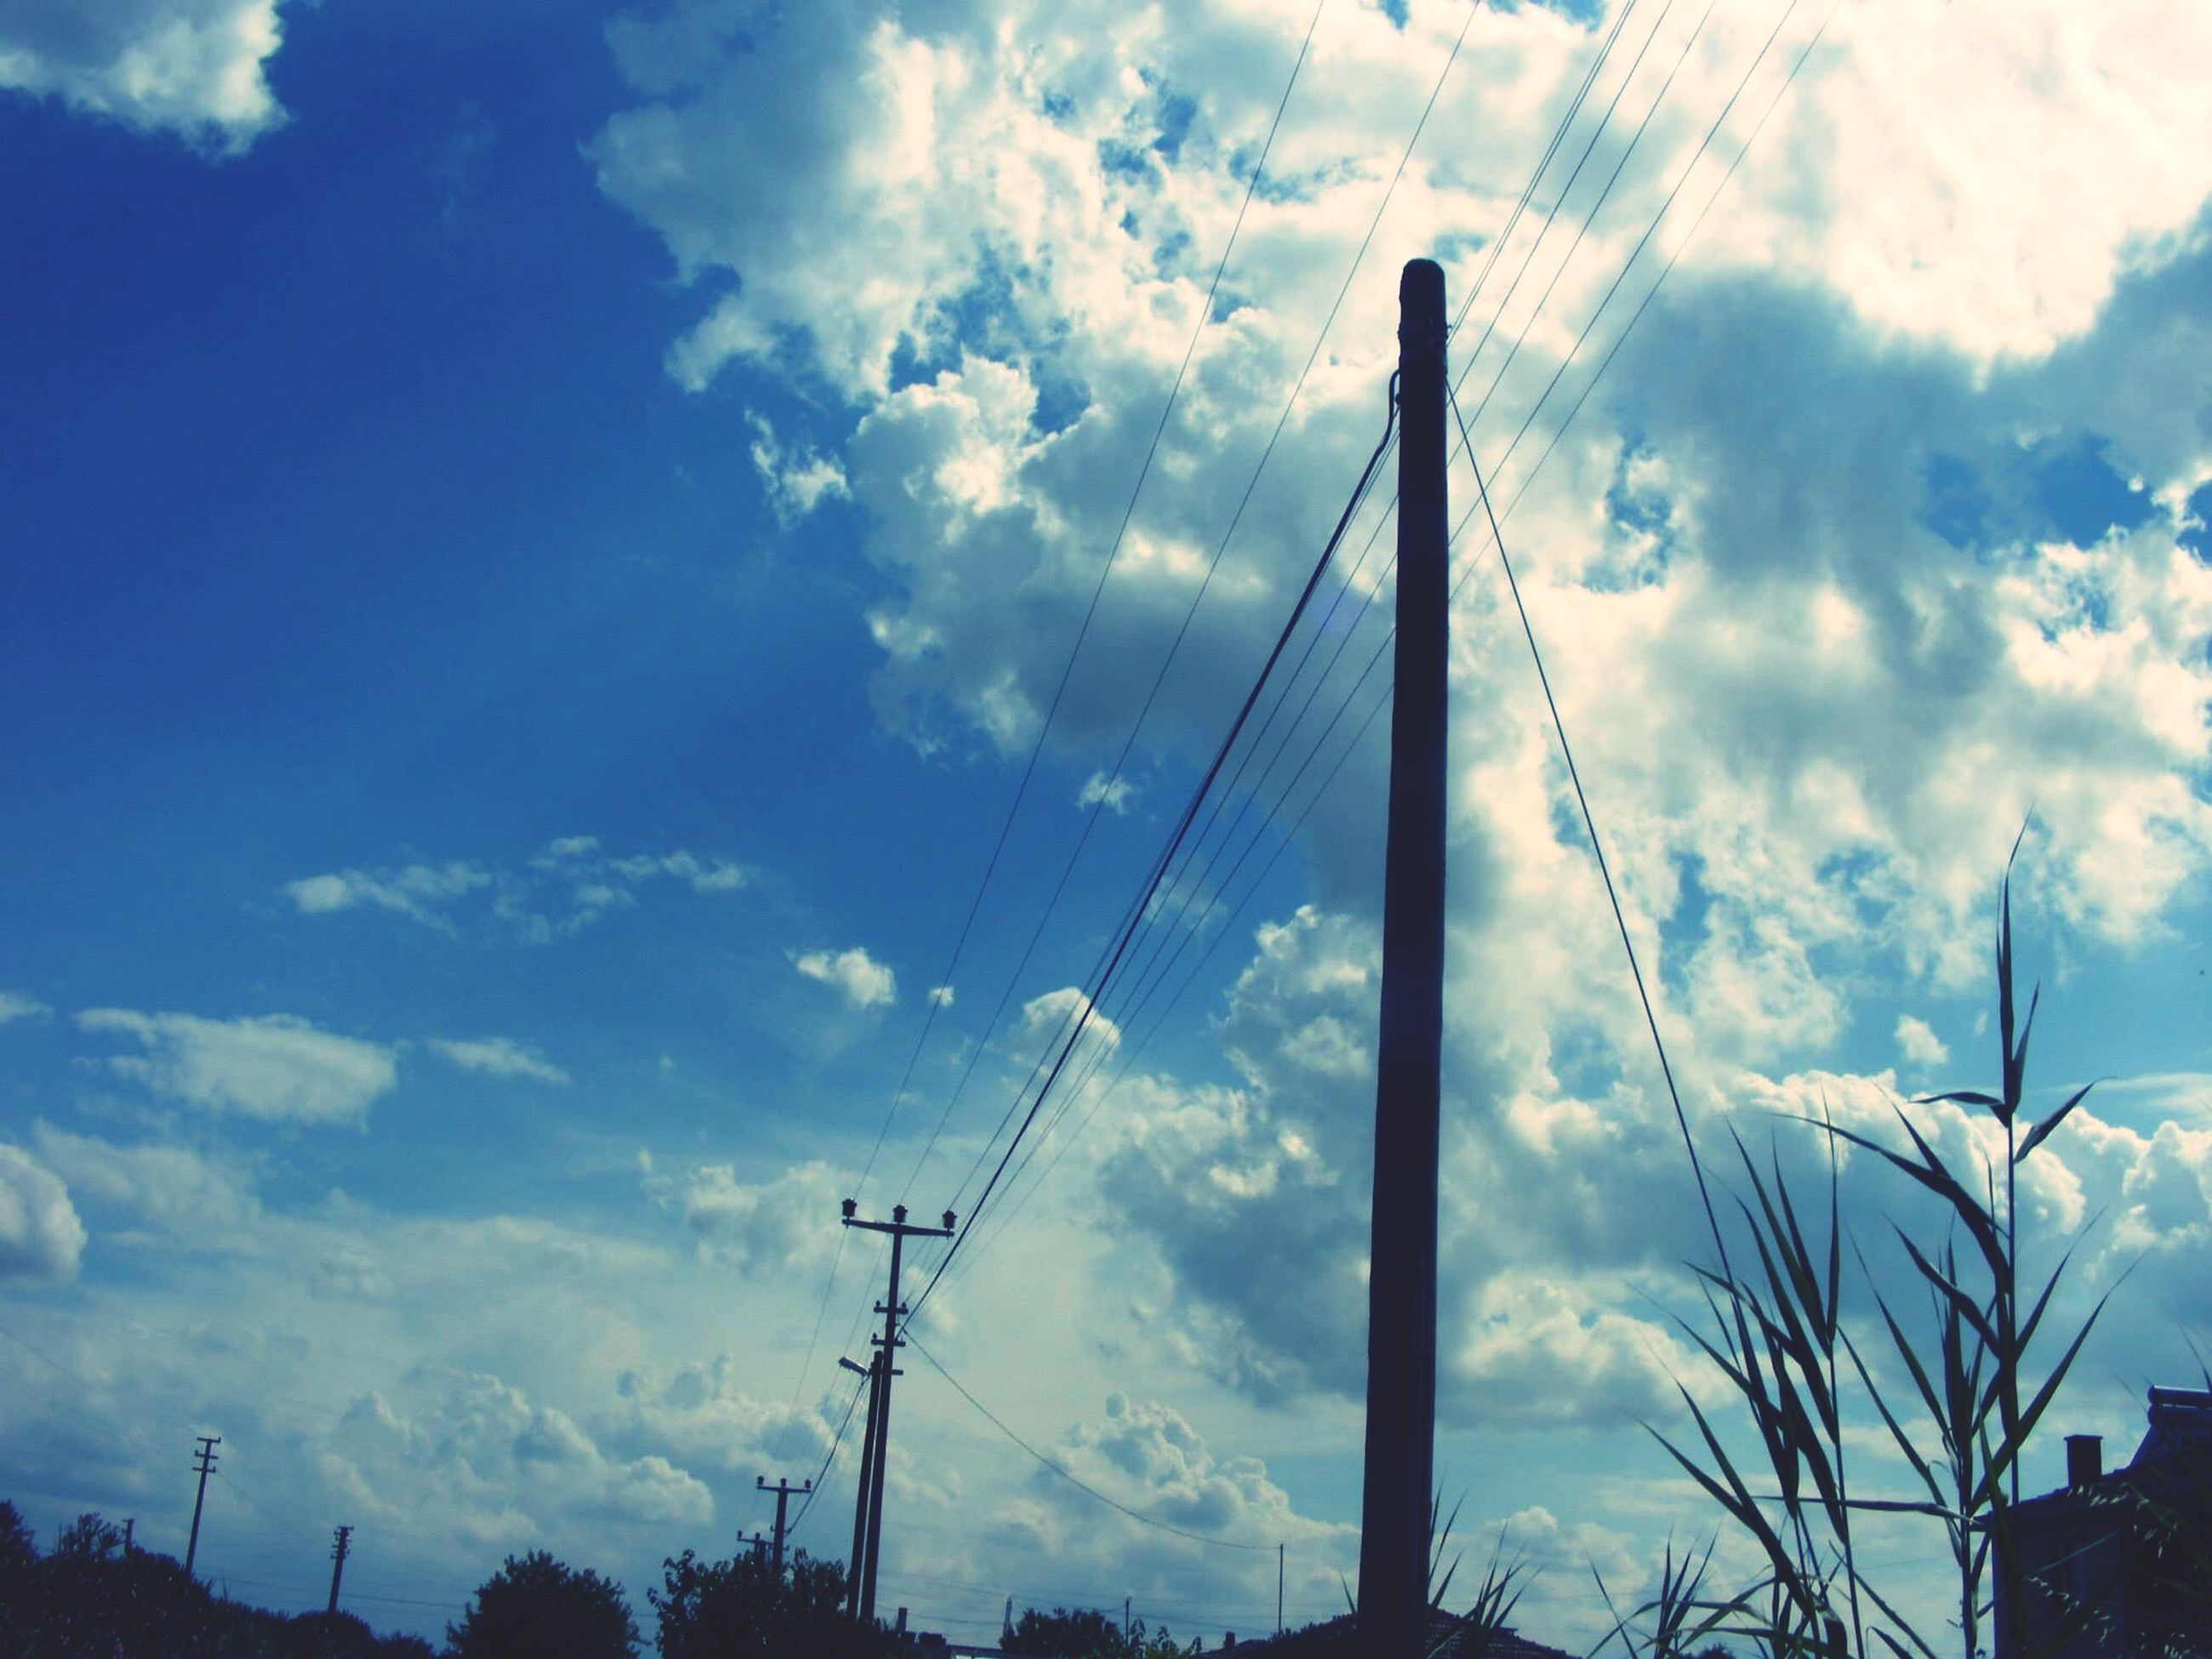 low angle view, electricity, connection, power line, sky, power supply, tree, electricity pylon, technology, cable, cloud, silhouette, blue, cloud - sky, day, nature, outdoors, tall - high, scenics, high section, treetop, telephone pole, electricity tower, telephone line, cumulus cloud, no people, tranquility, cloudy, tranquil scene, outline, beauty in nature